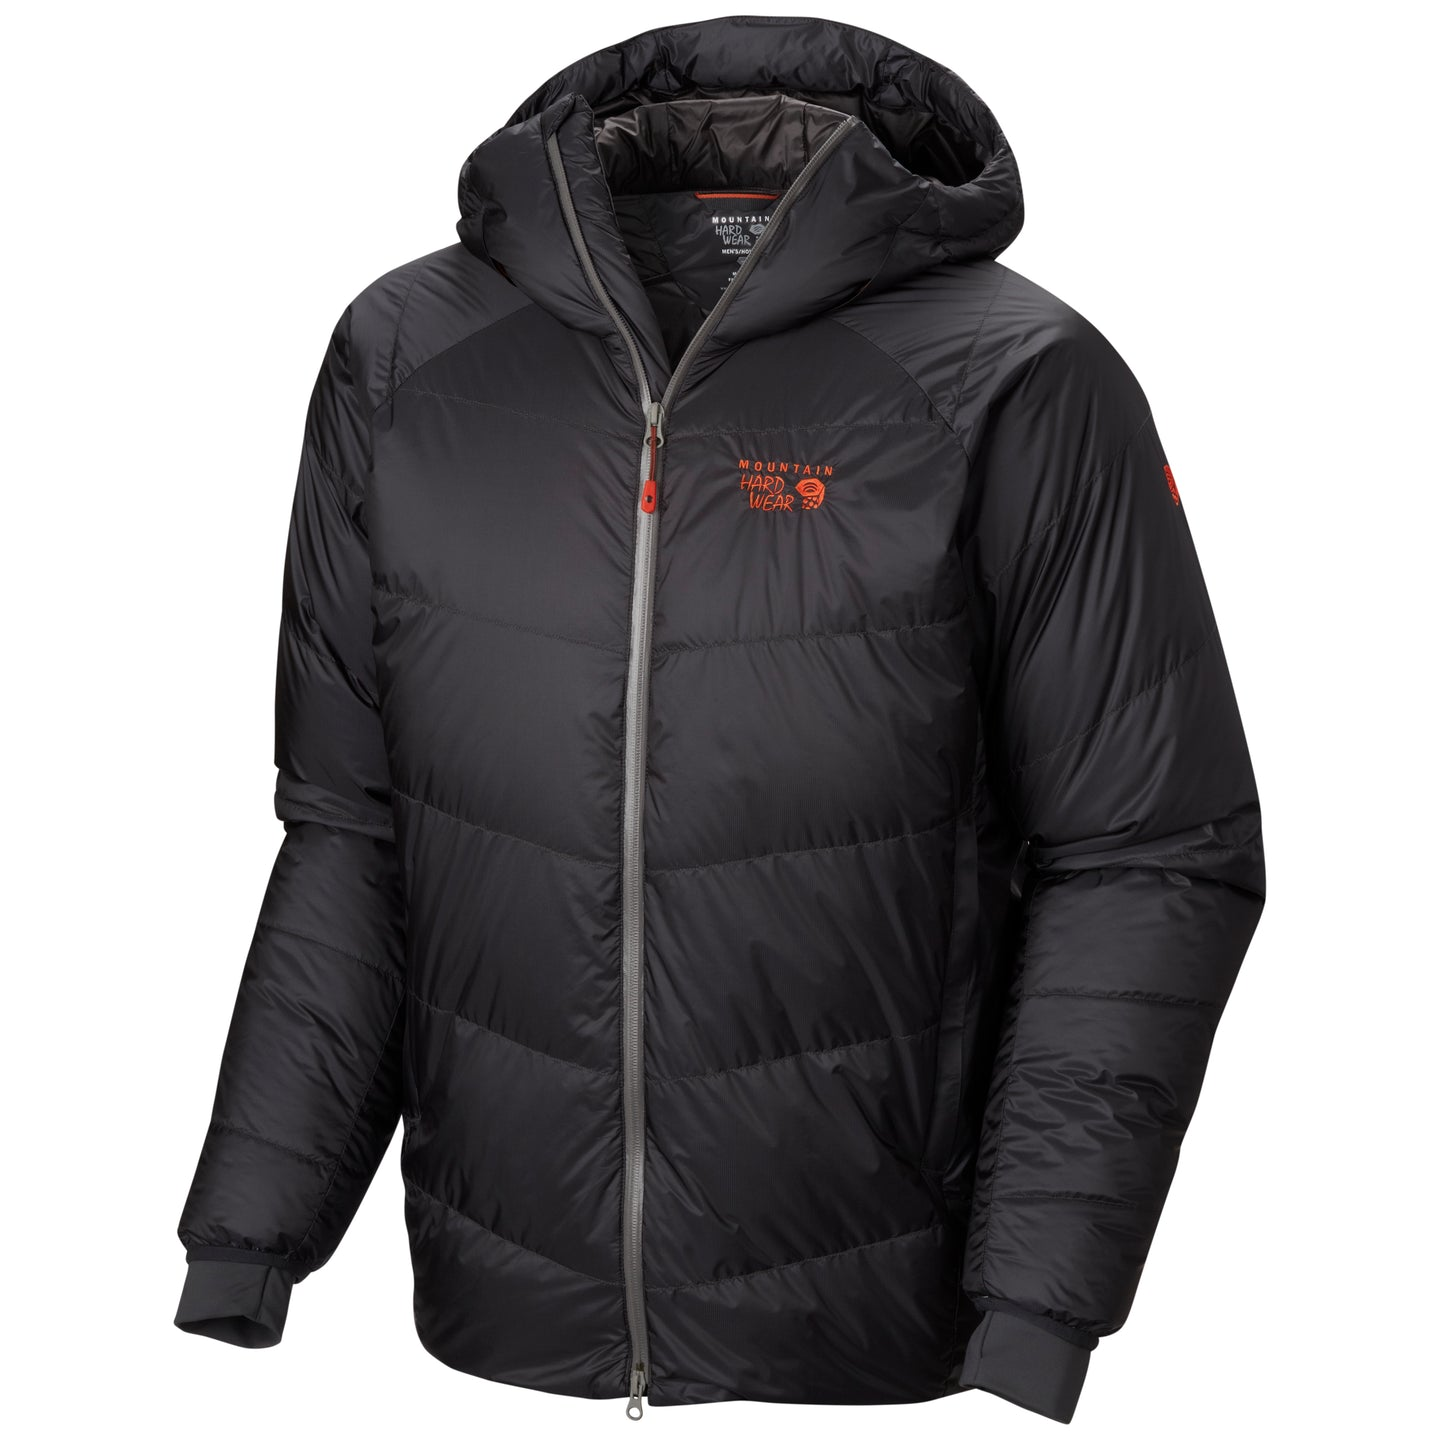 Nilas Jacket by Mountain Hardwear